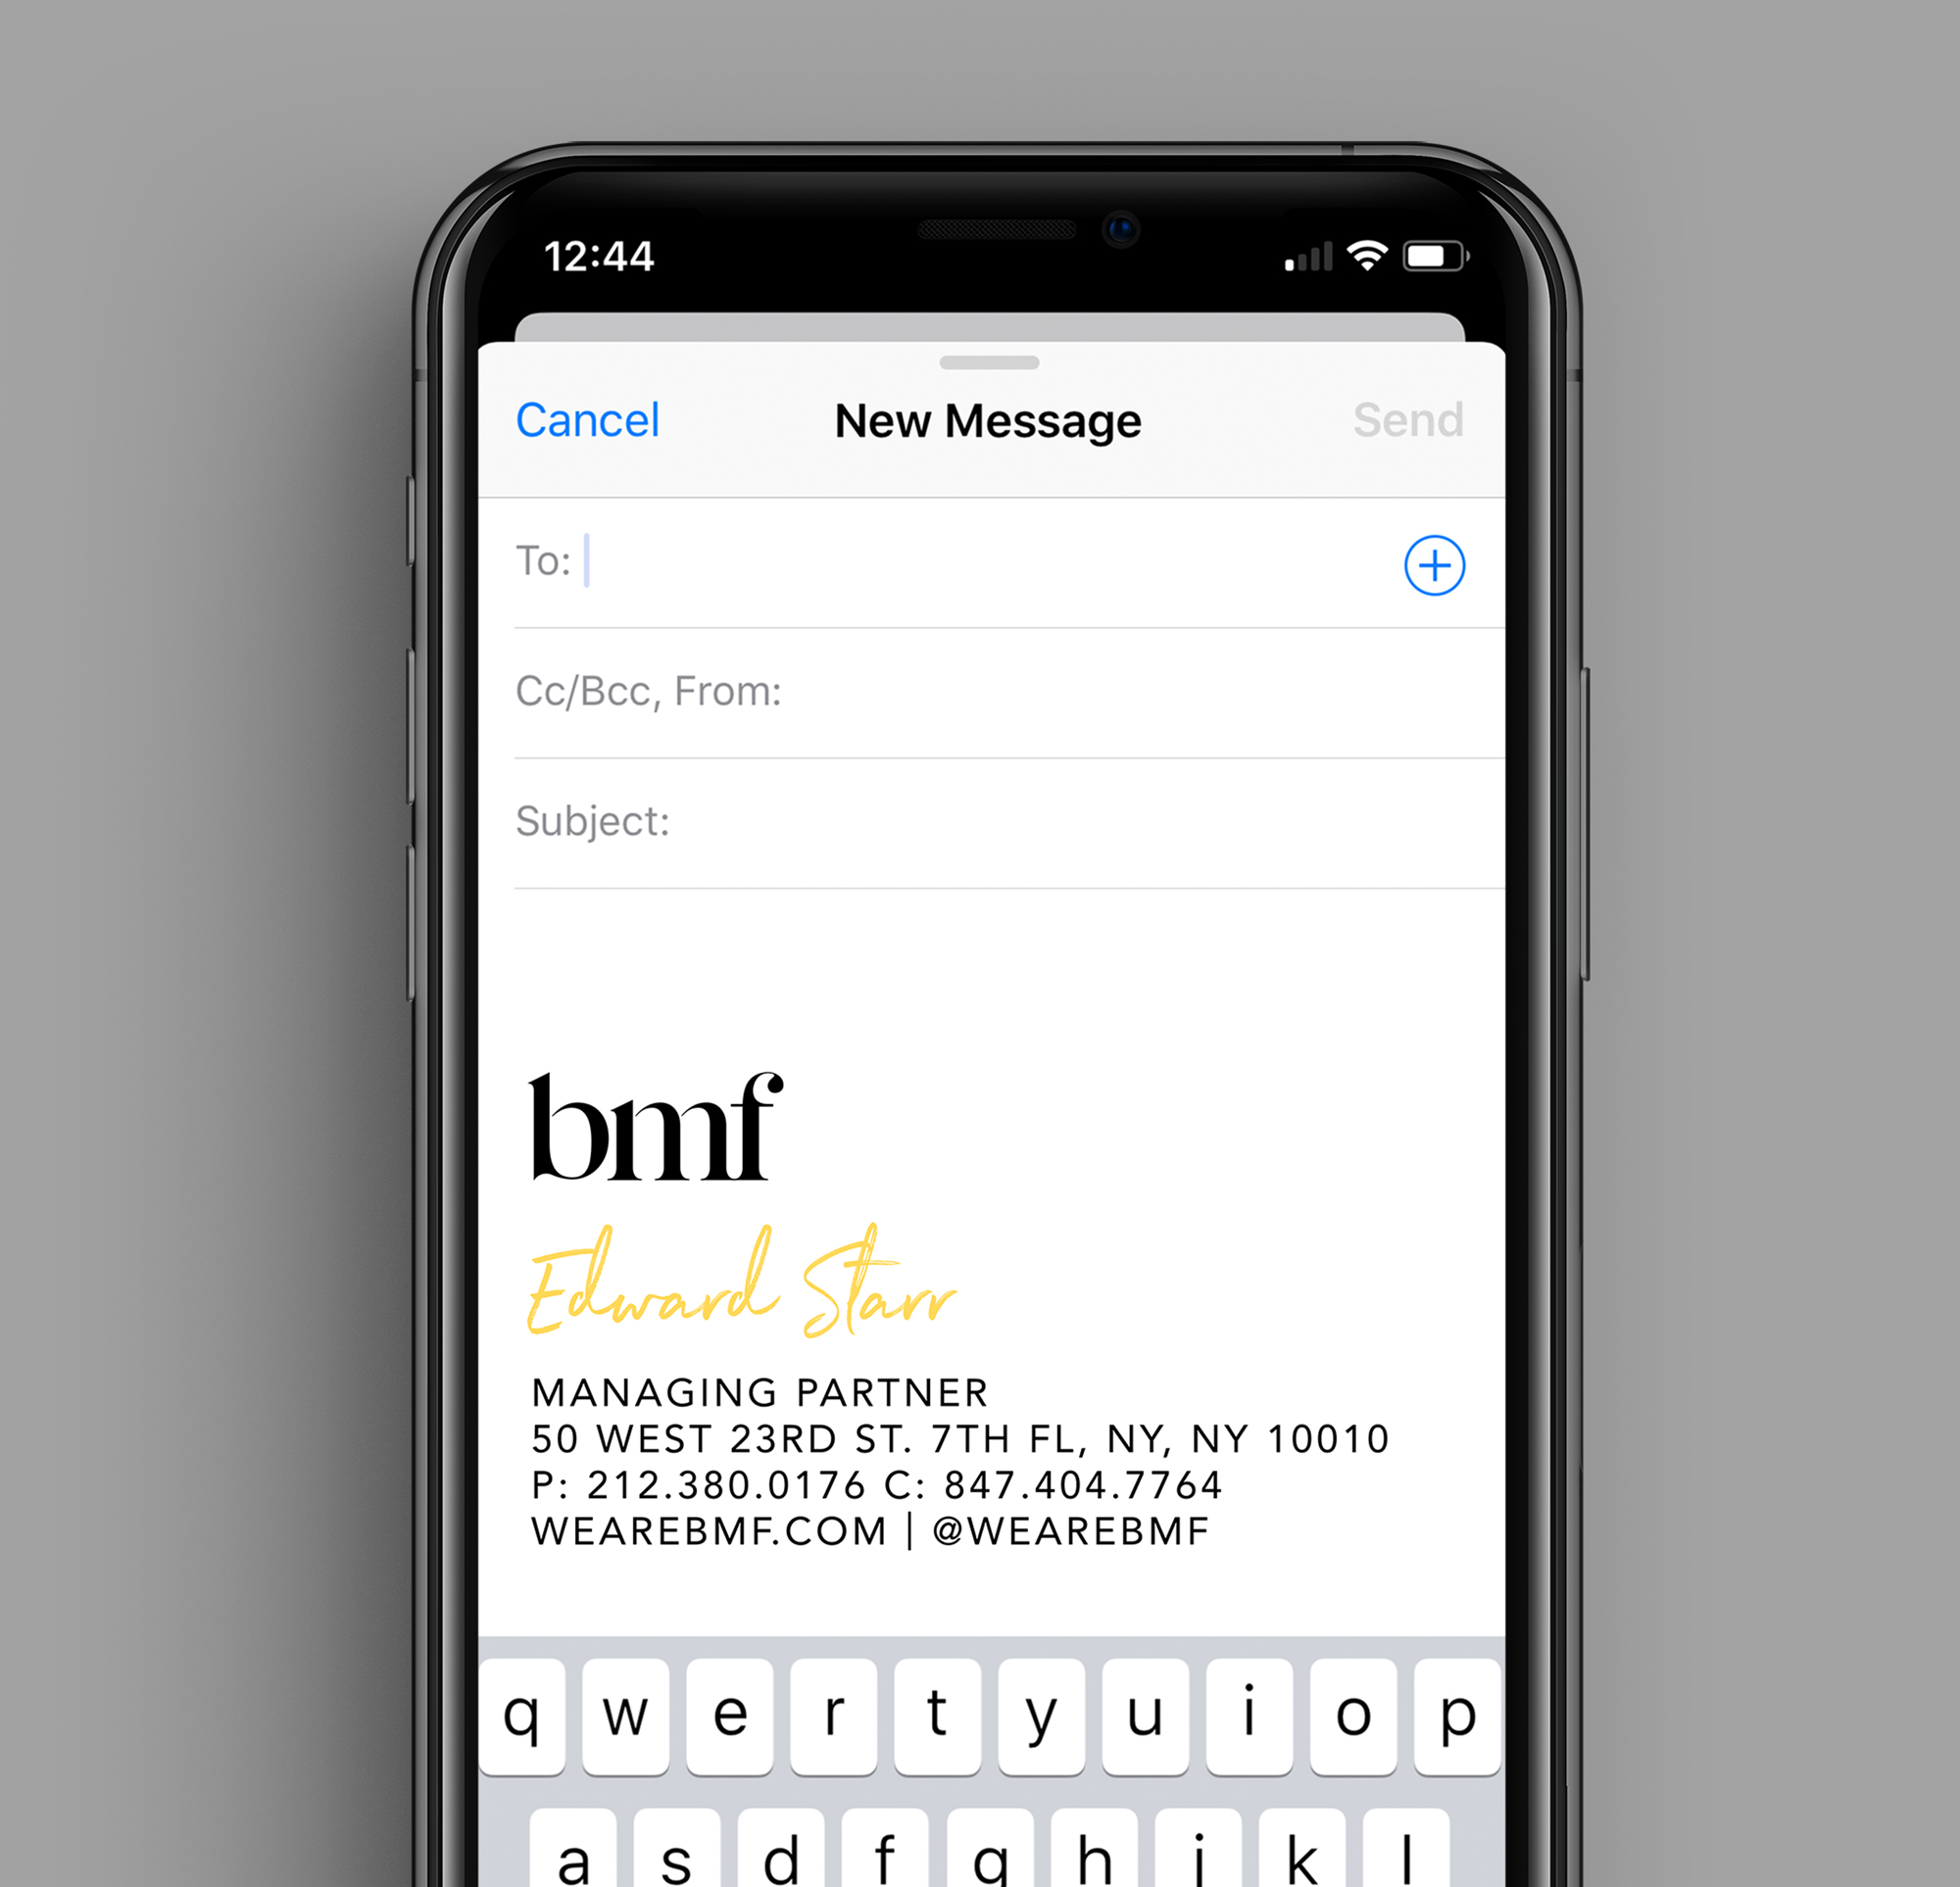 BMF-Email-Sig-iPhone-1